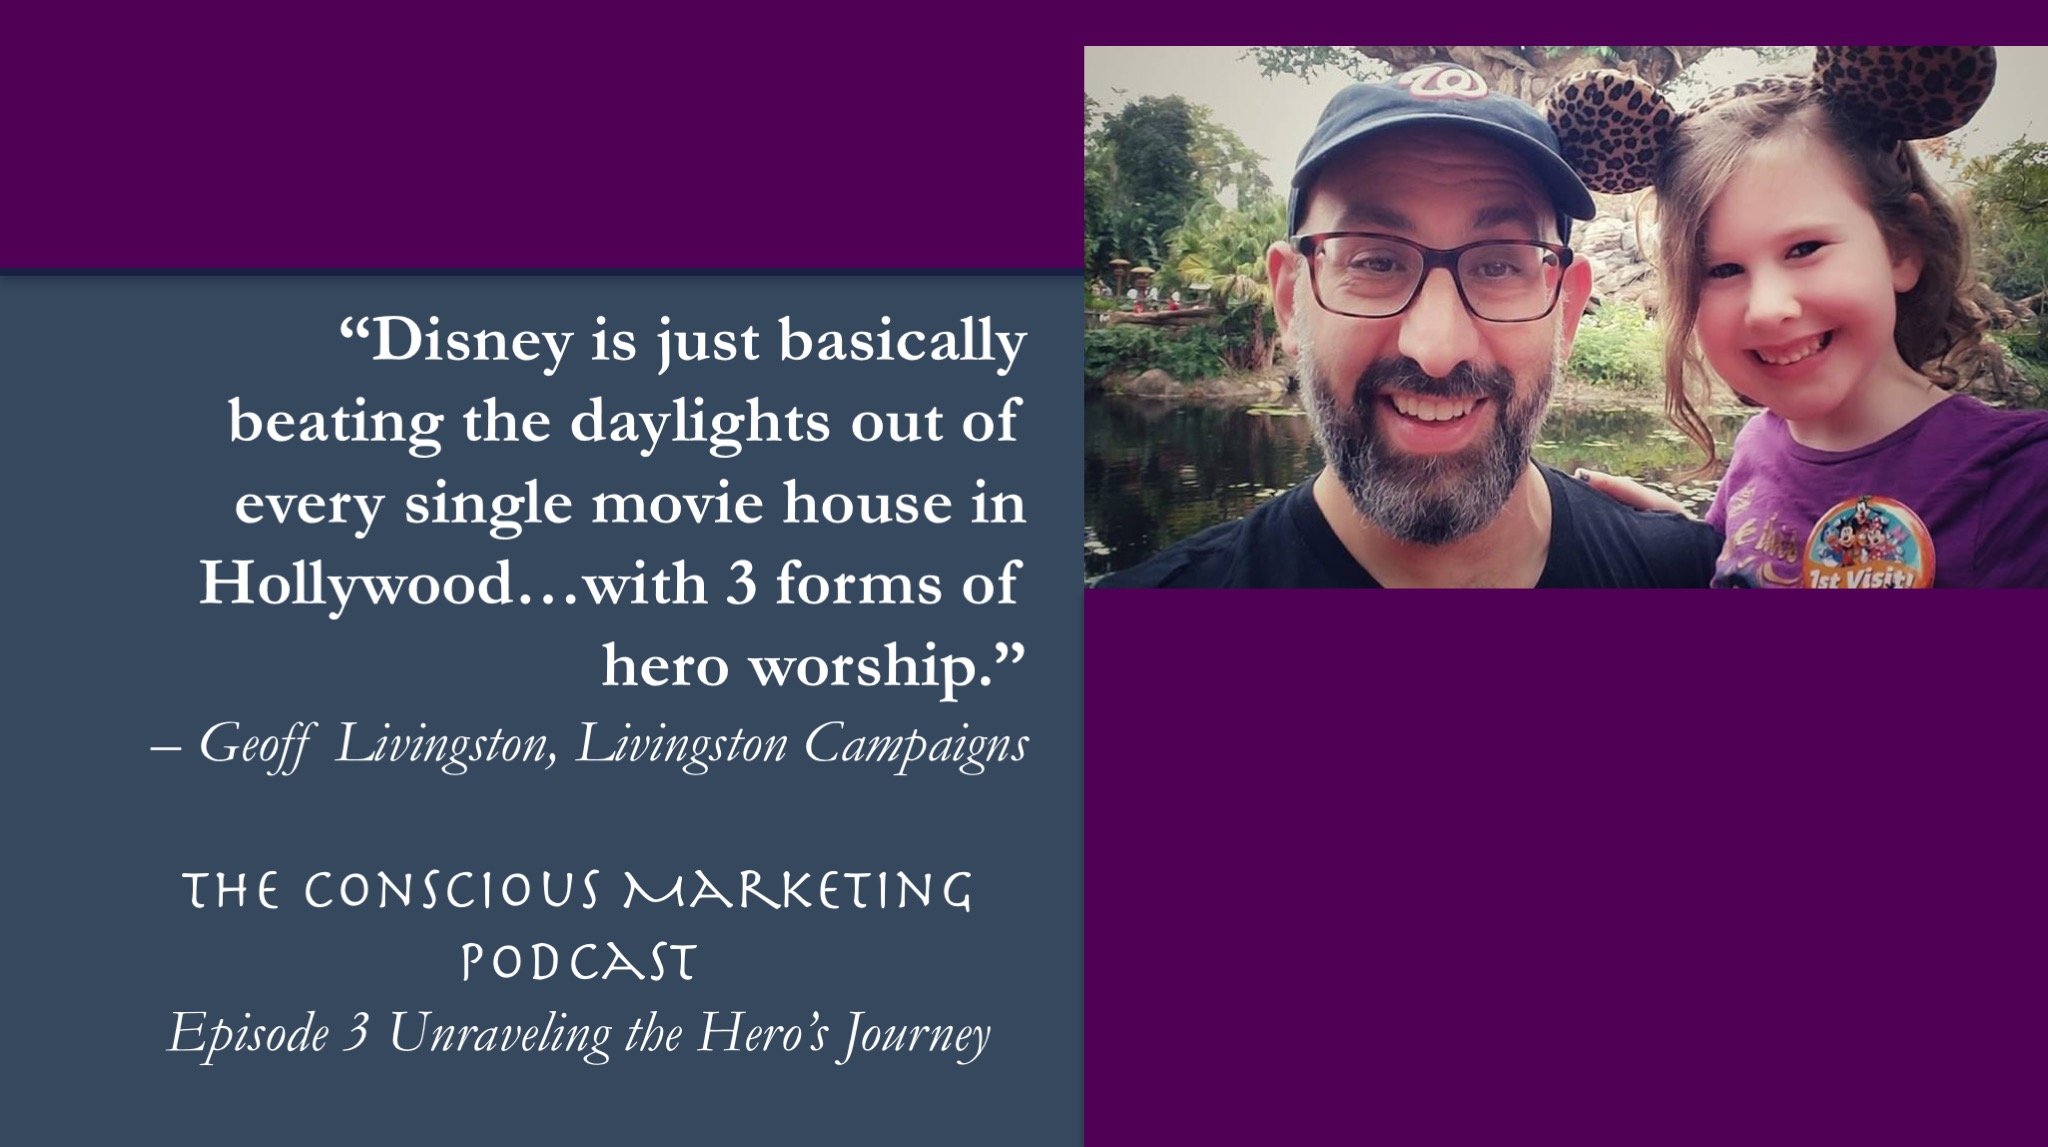 Geoff Livingston on the Hero's Journey